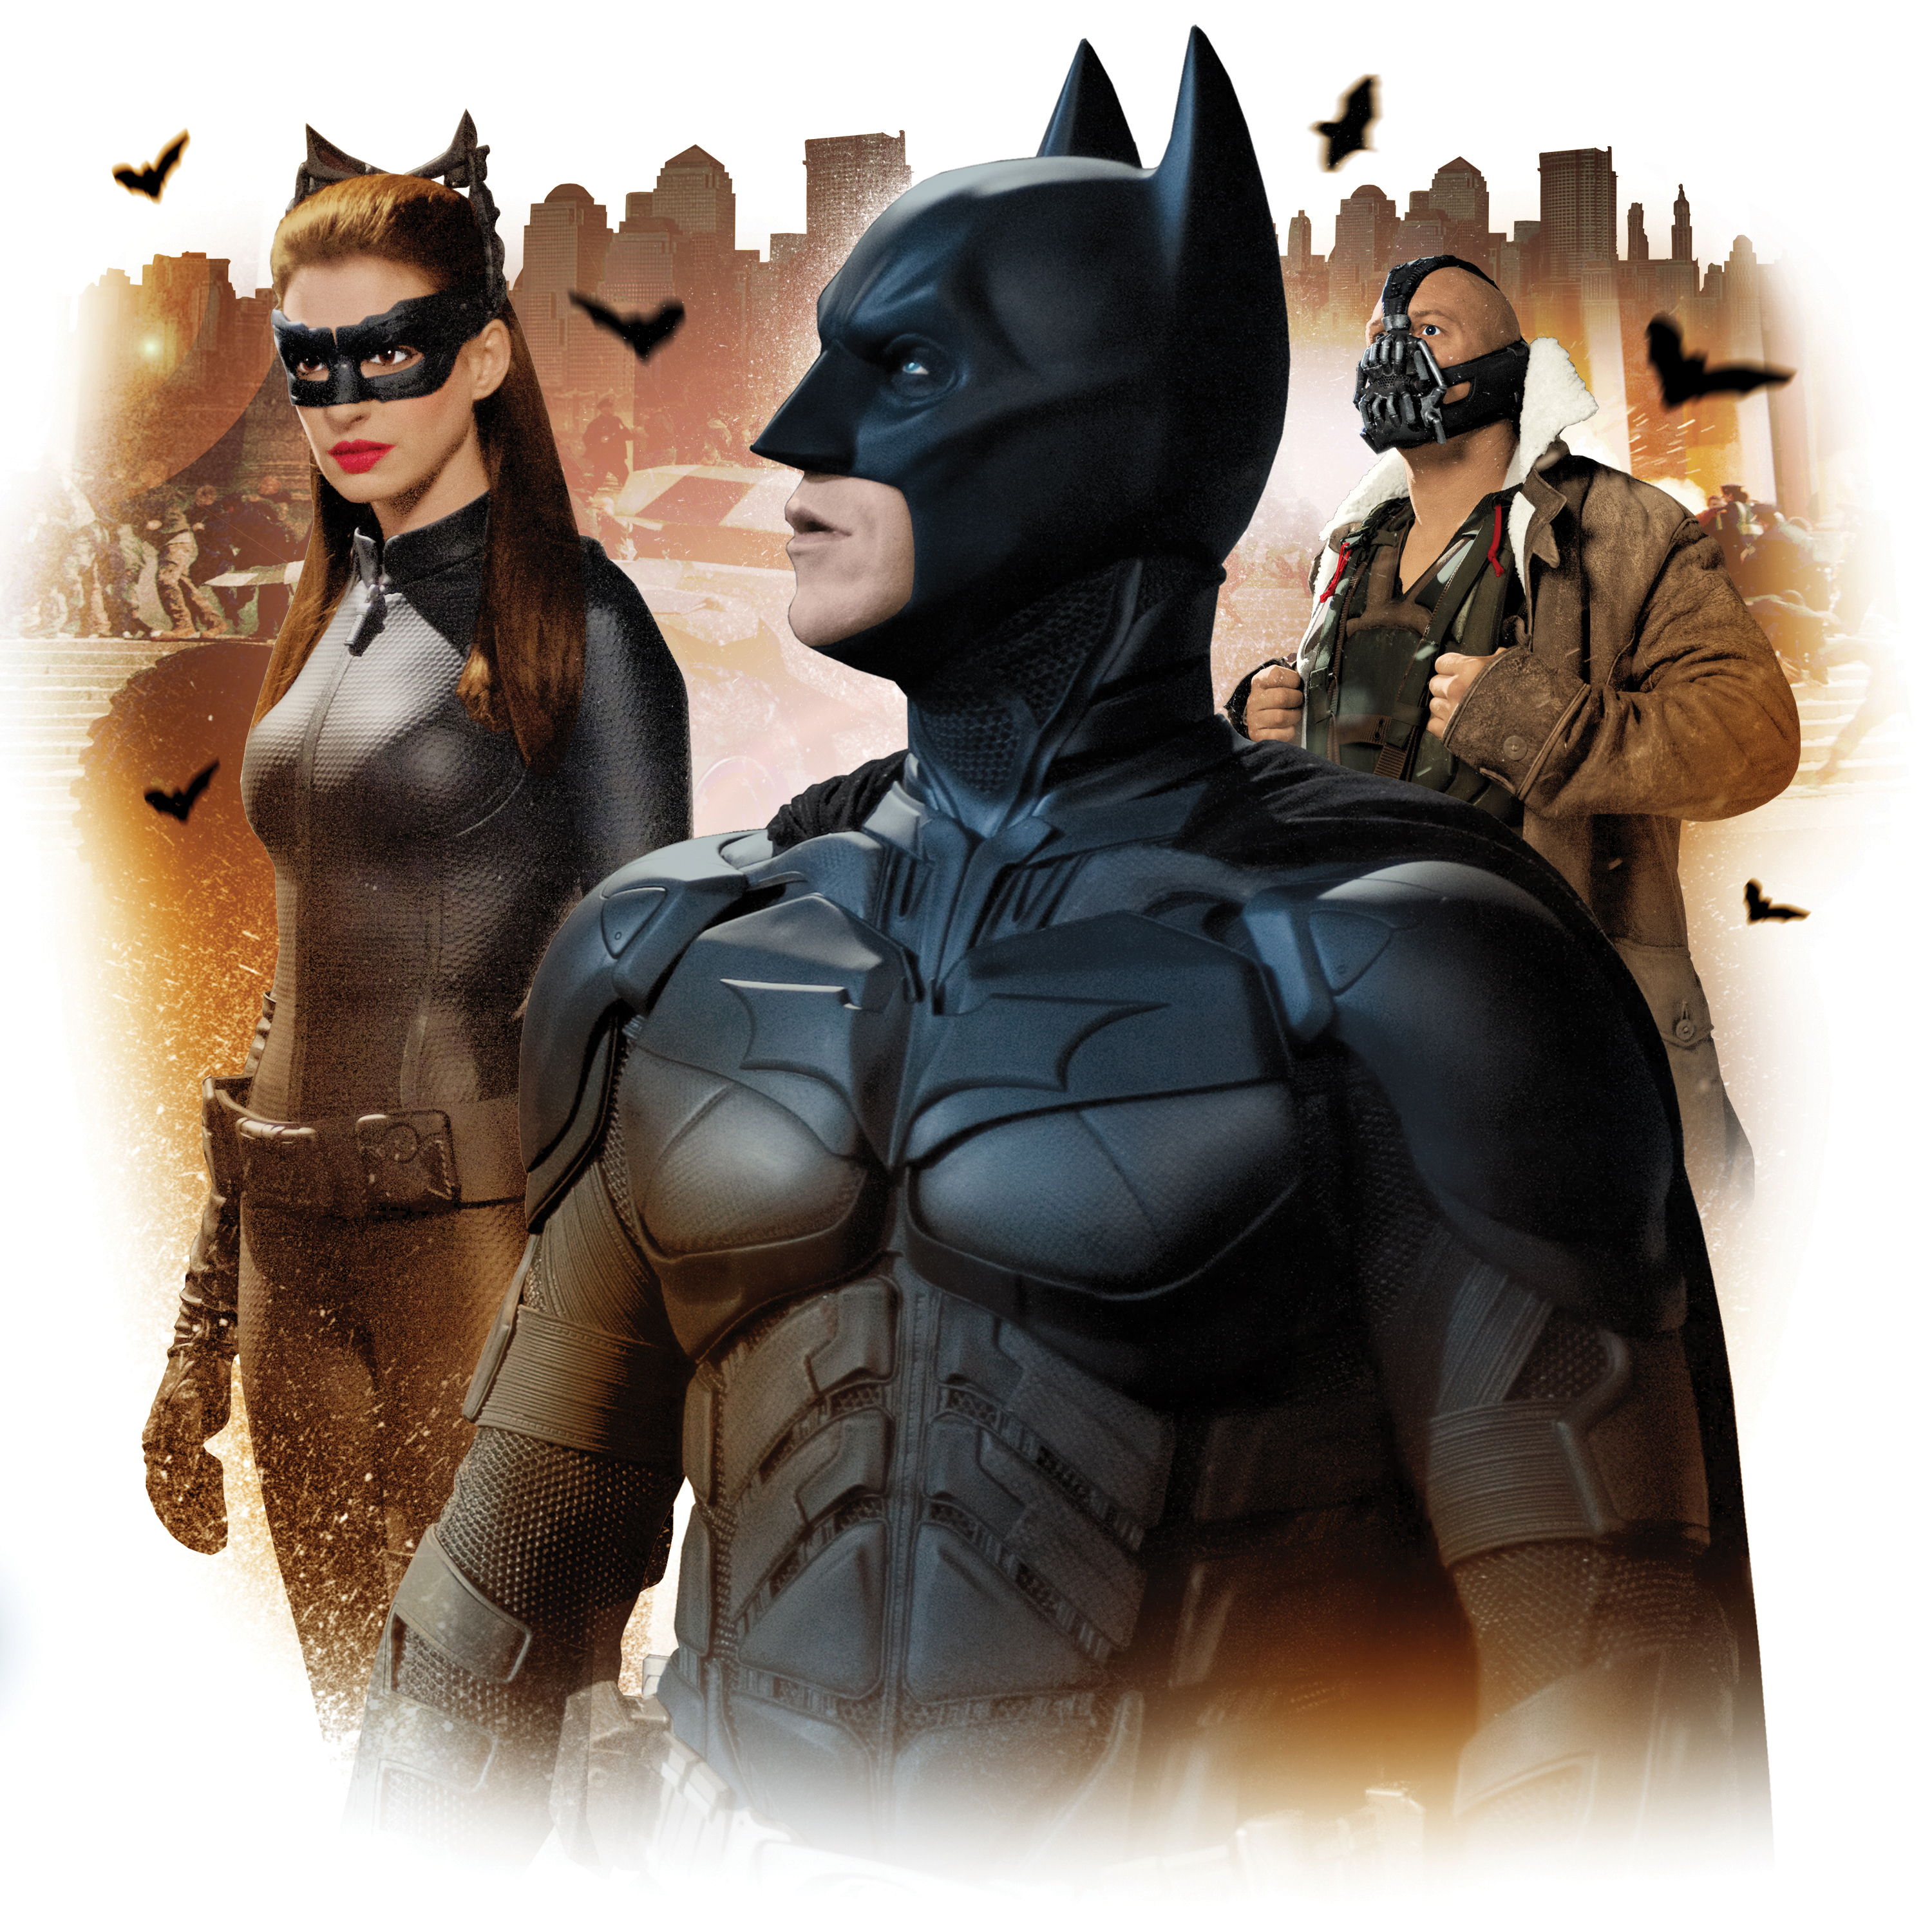 the dark knight of a postmodern Post-the dark knight rises summary john met a few people during his army days who had nothing to do with the army, a few with quite exceptional abilities and connections.